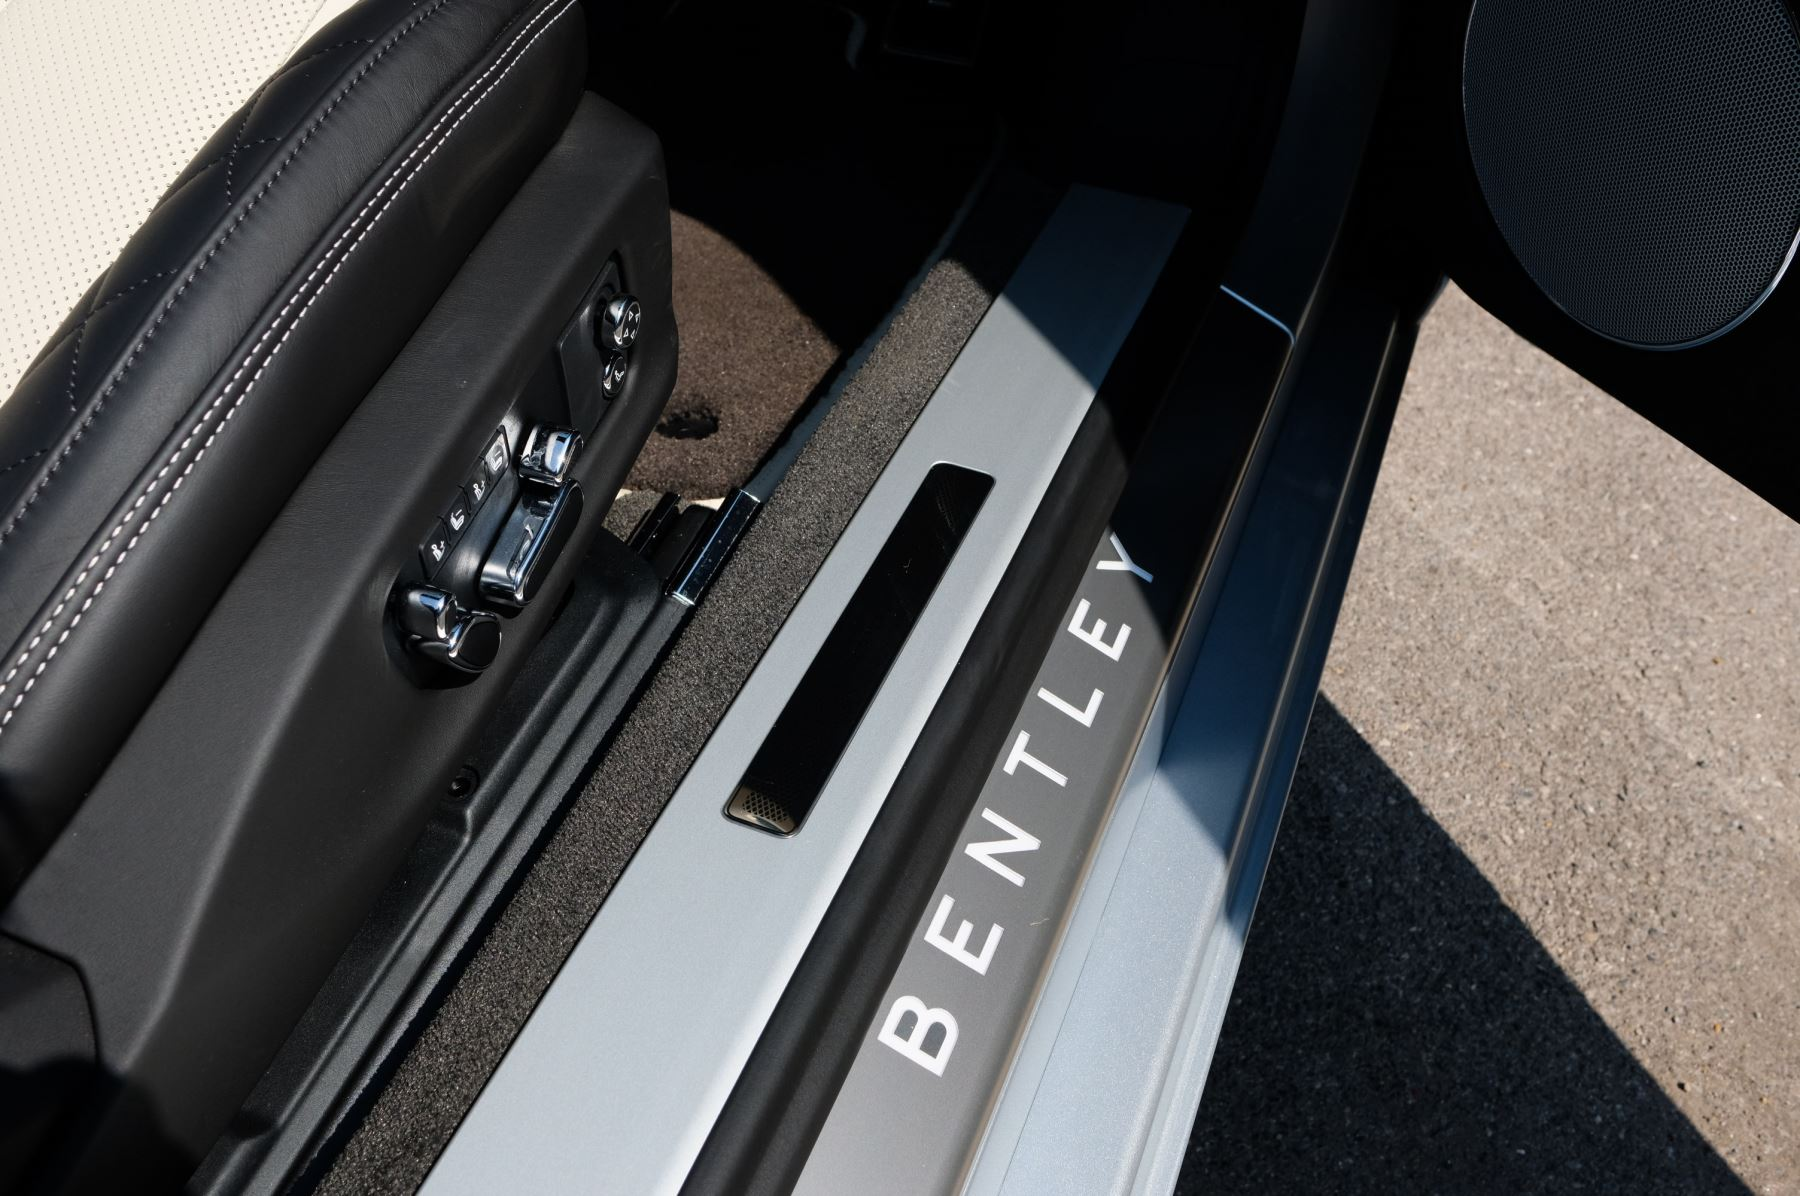 Bentley Continental GTC 4.0 V8 - Mulliner Driving Specification and Blackline Specification with 22 Inch Alloys image 20